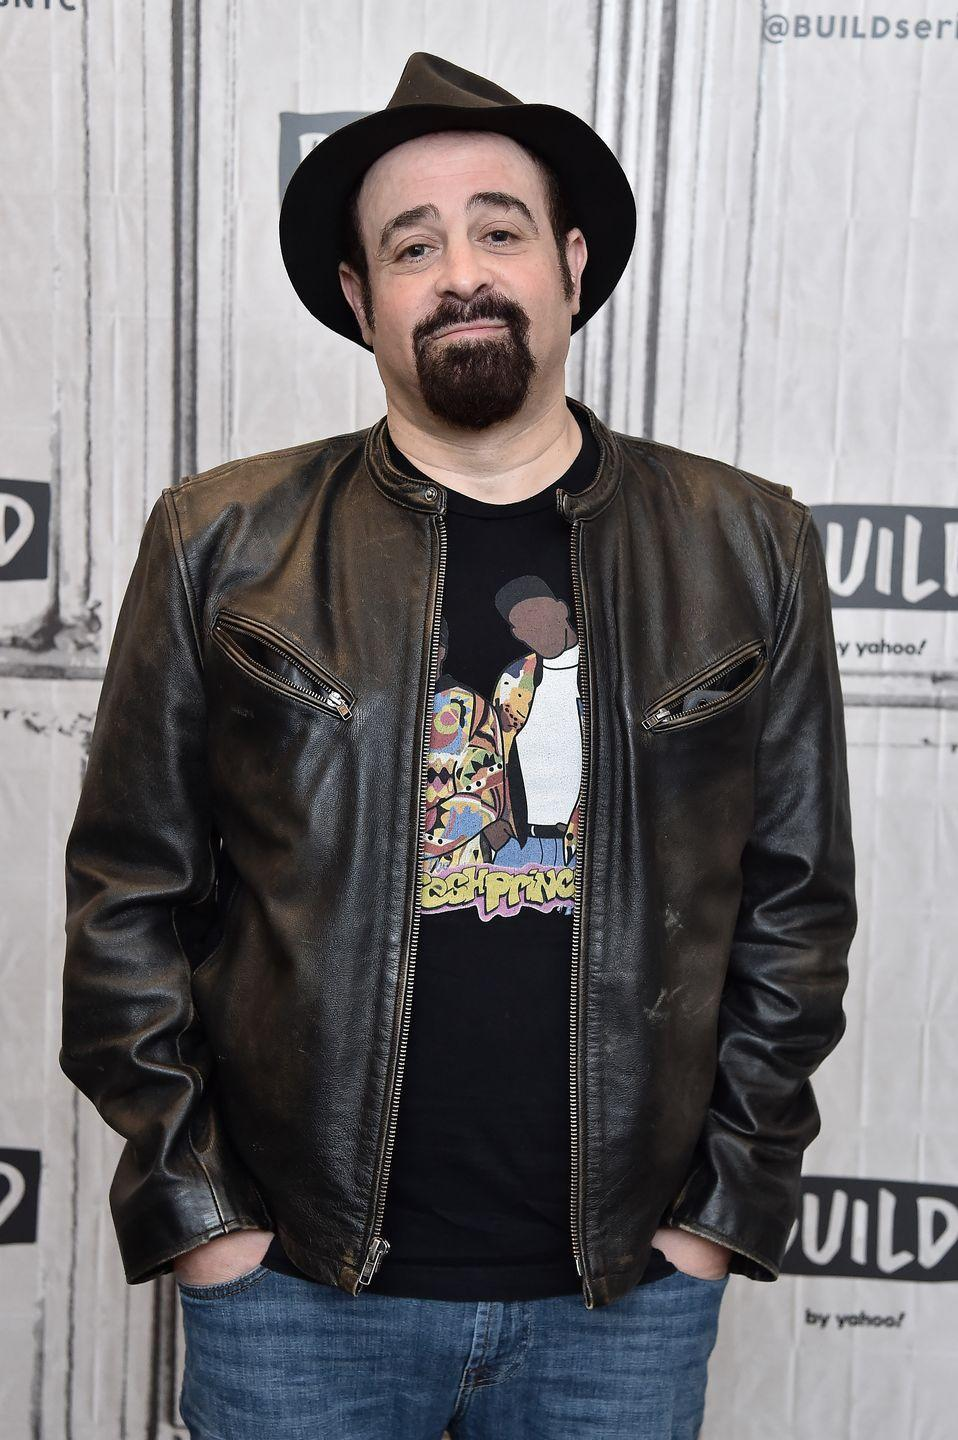 """<p>Before Adam Duritz was the lead singer of the Counting Crows, the musician joined a different type of band of brothers. Duritz was a <a href=""""https://www.sigmanu.org/prospective-members/notable-sigma-nu-members"""" rel=""""nofollow noopener"""" target=""""_blank"""" data-ylk=""""slk:member of Sigma Nu"""" class=""""link rapid-noclick-resp"""">member of Sigma Nu</a> while attending the University of California at Davis. </p>"""